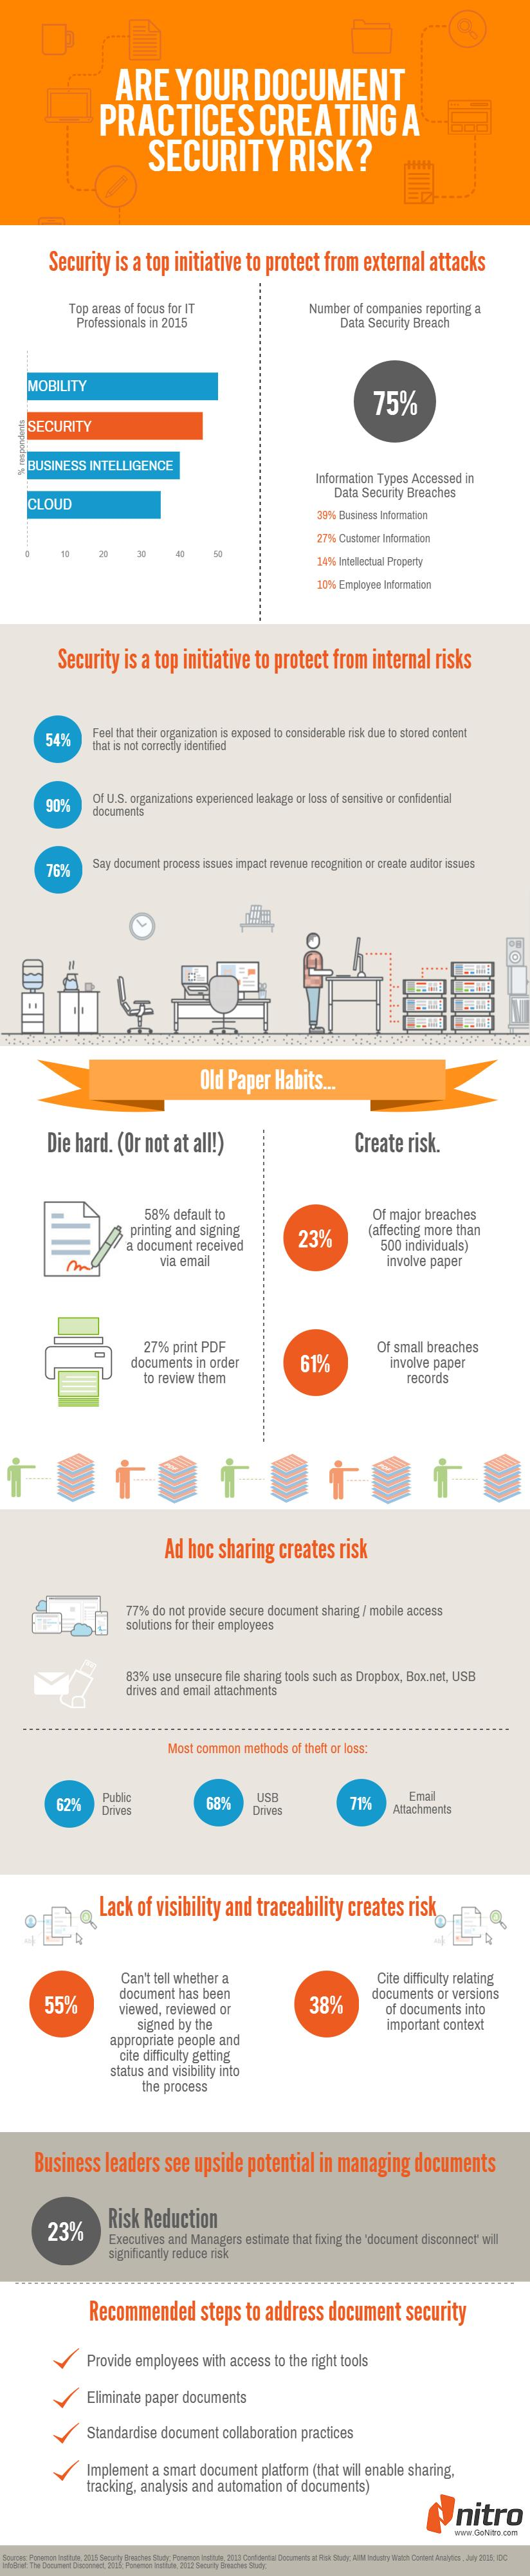 INFOGRAPHIC: Managing Digital Document Security in the Workplace